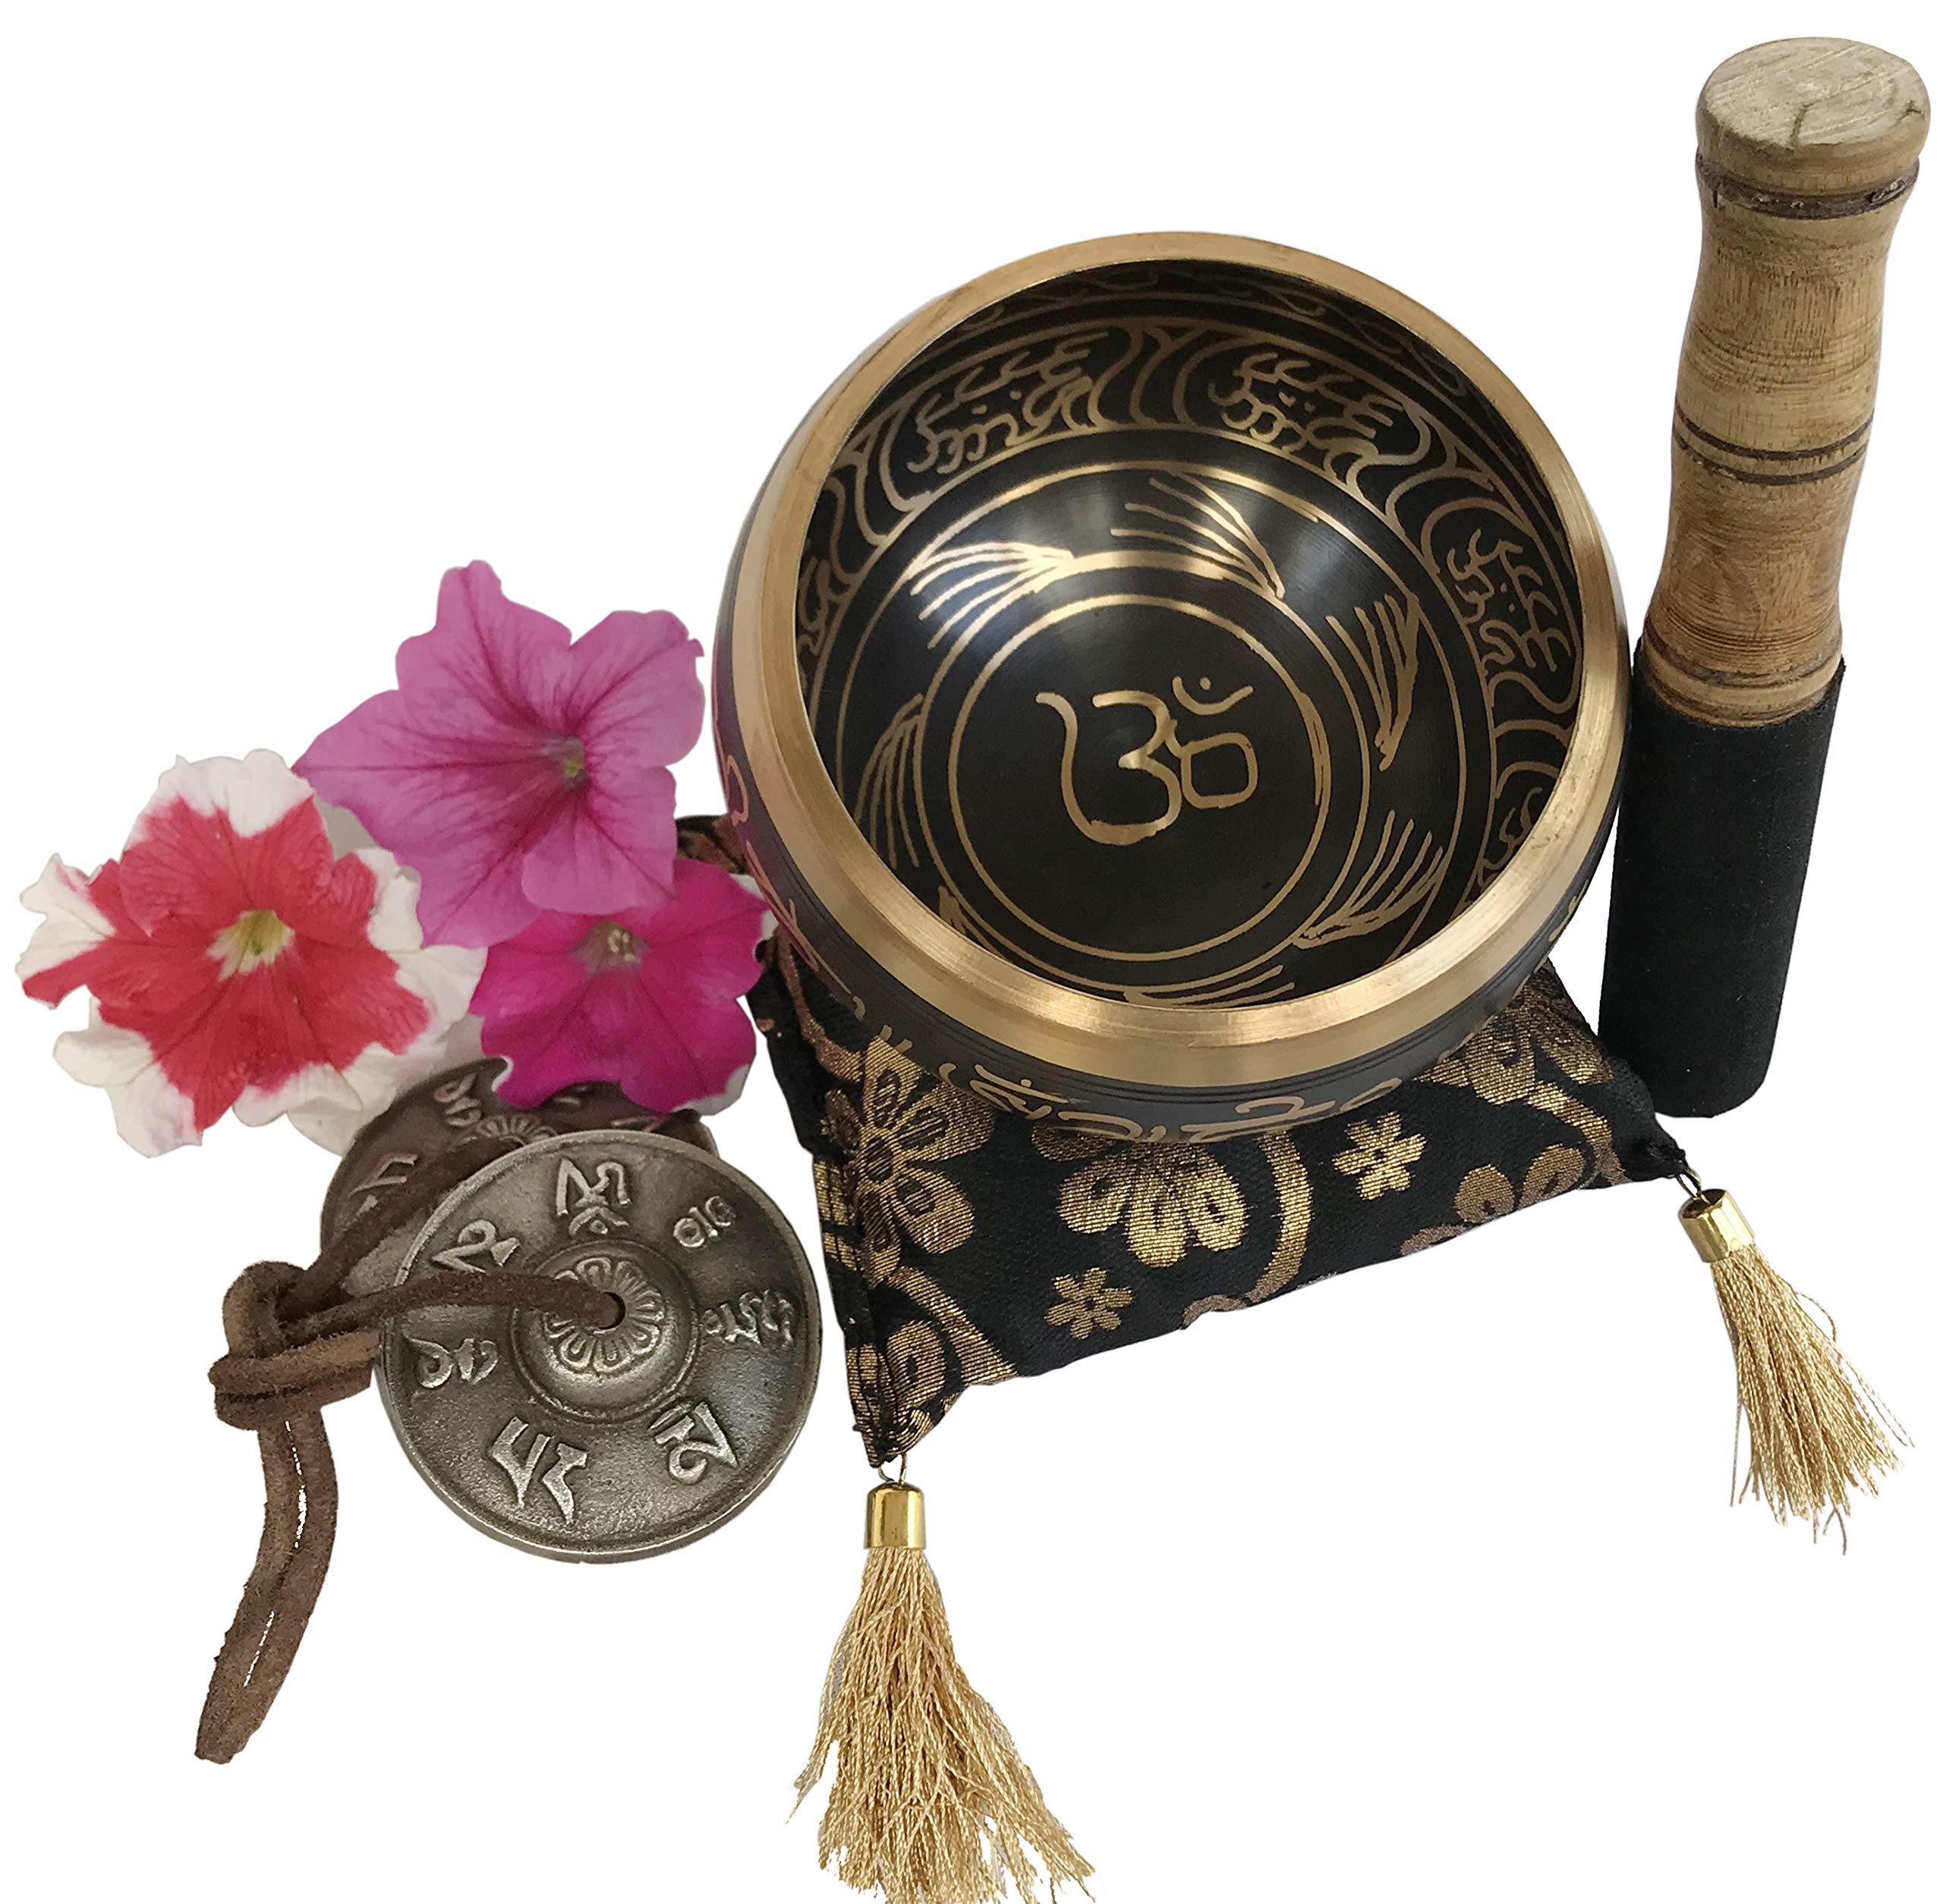 Large Silent Mind Design Tibetan Singing Bowl Tingsha Cymbals Set - With Mallet and Cushion, Additional Gifts Inside - for Yoga, Meditation, Buddhist Prayer and Chakra Healing by cuero